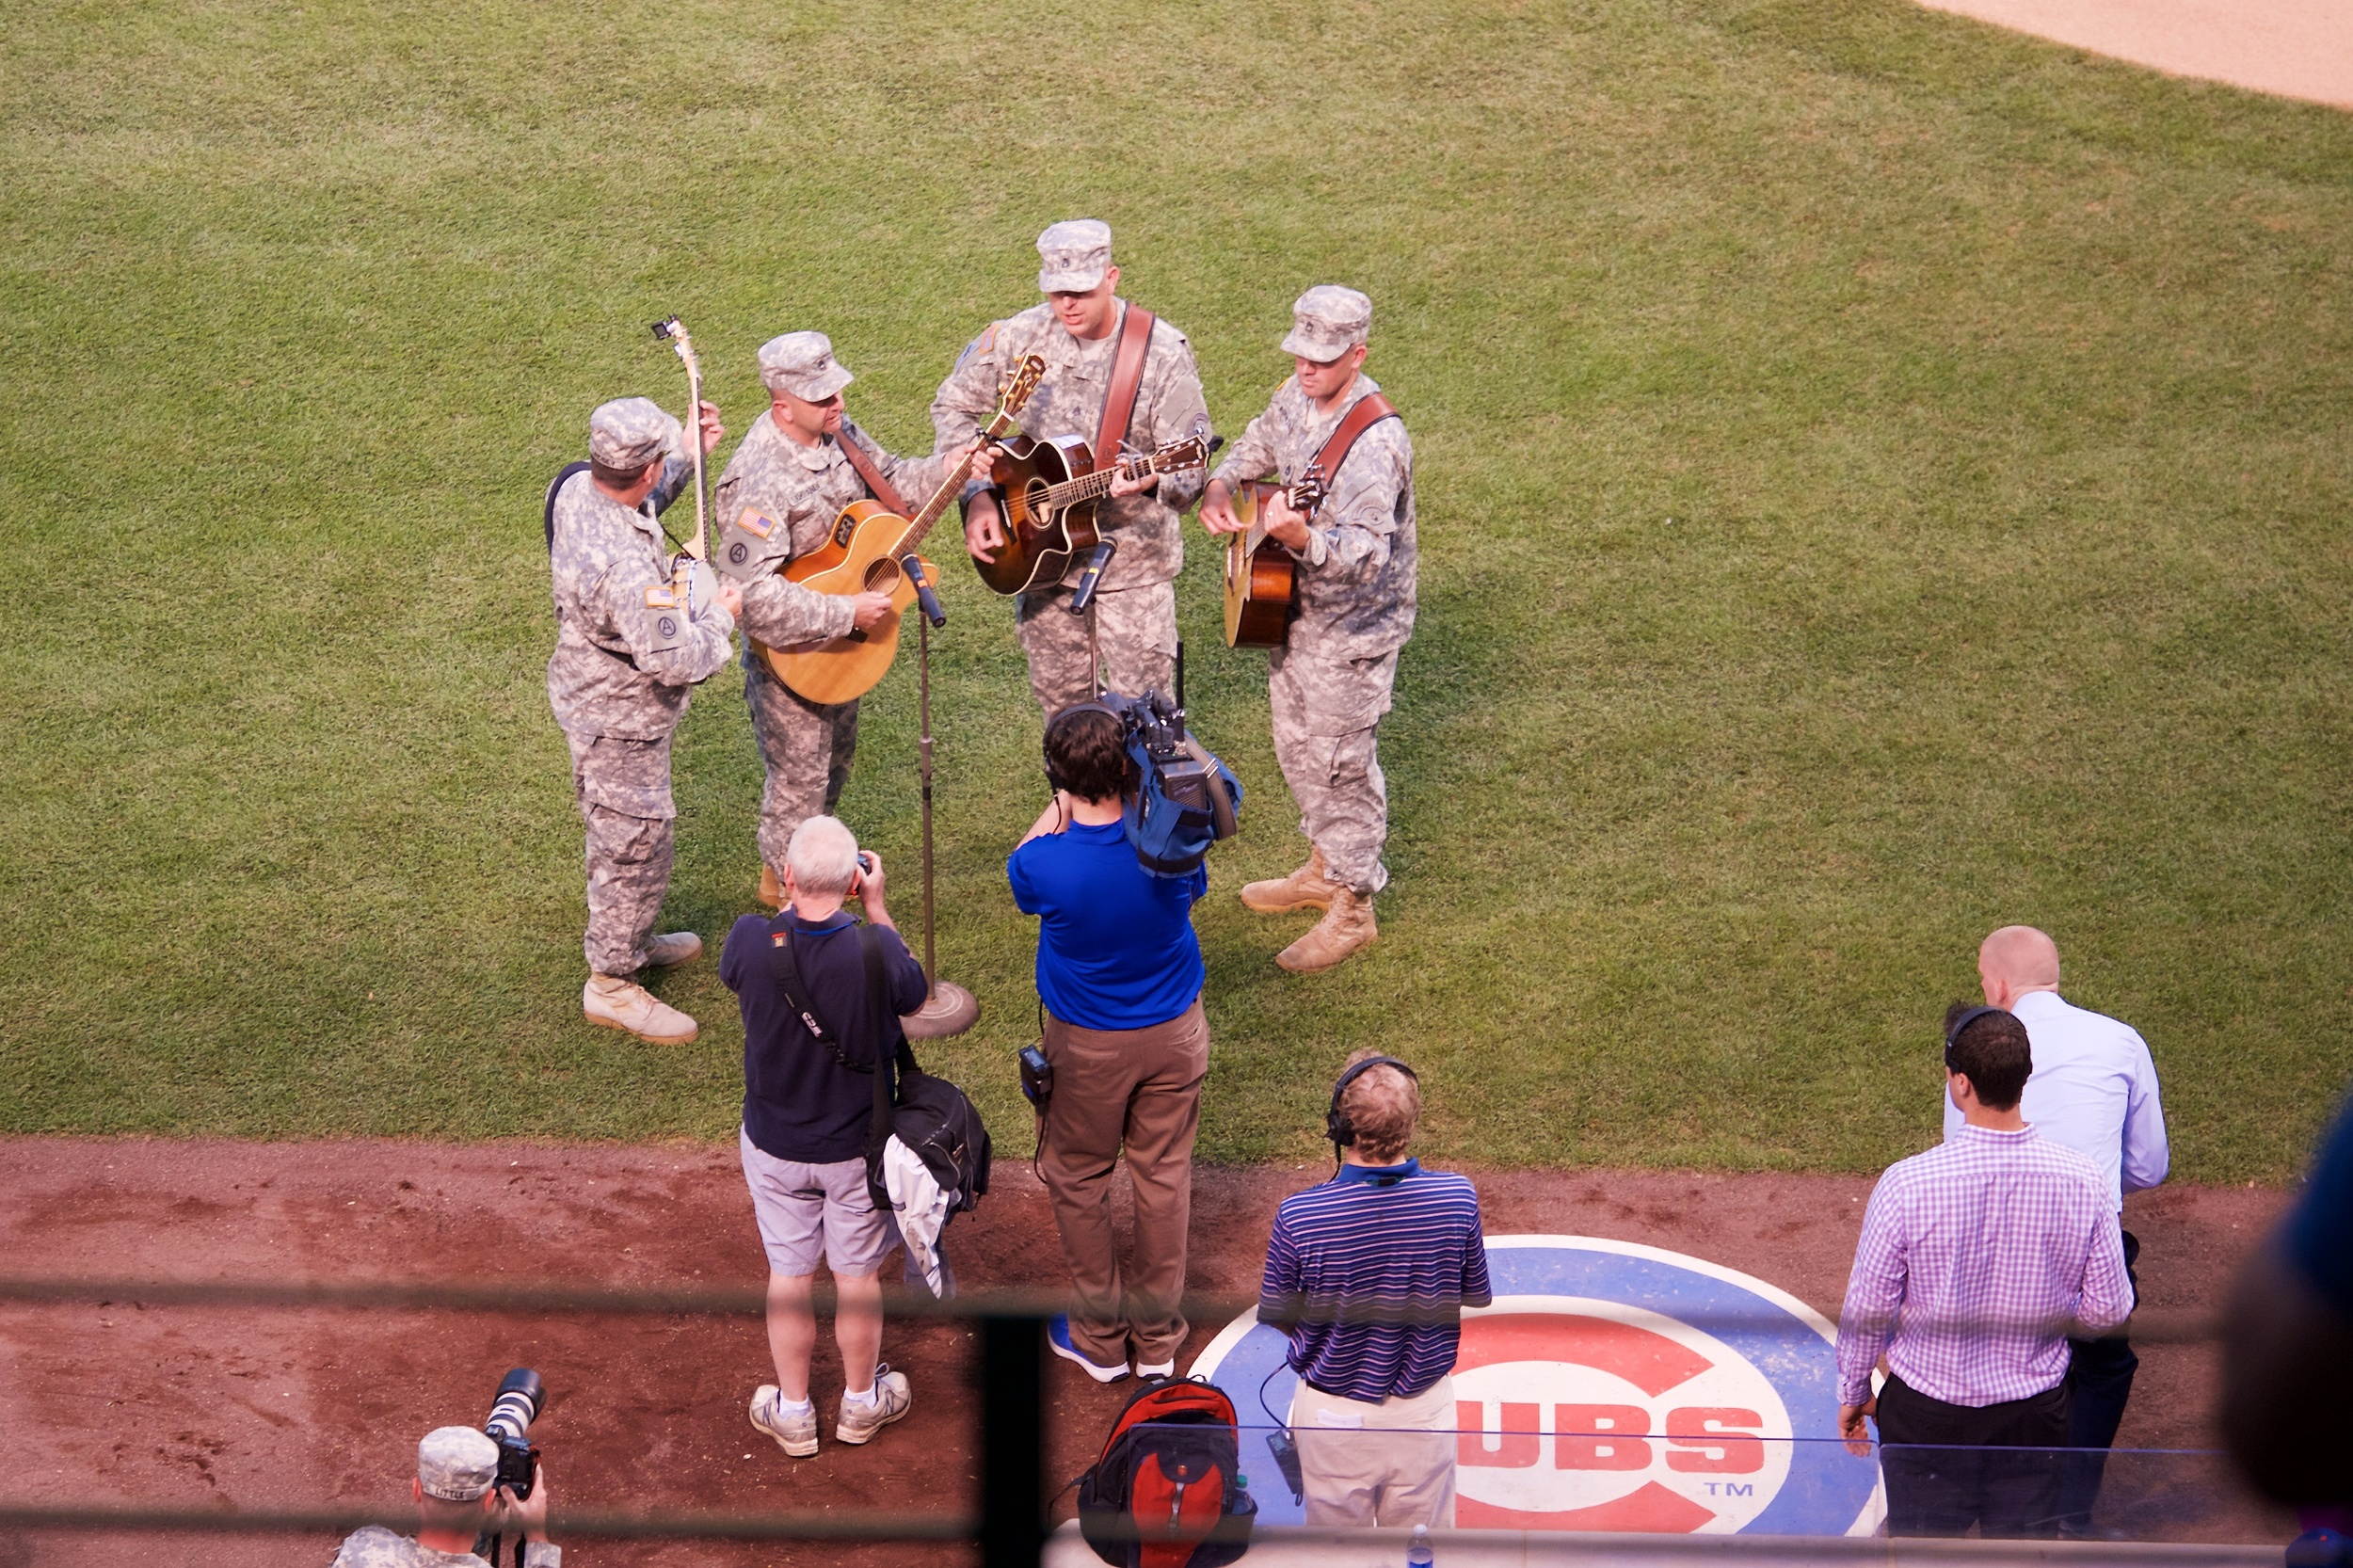 Guitars and banjo for the National Anthem